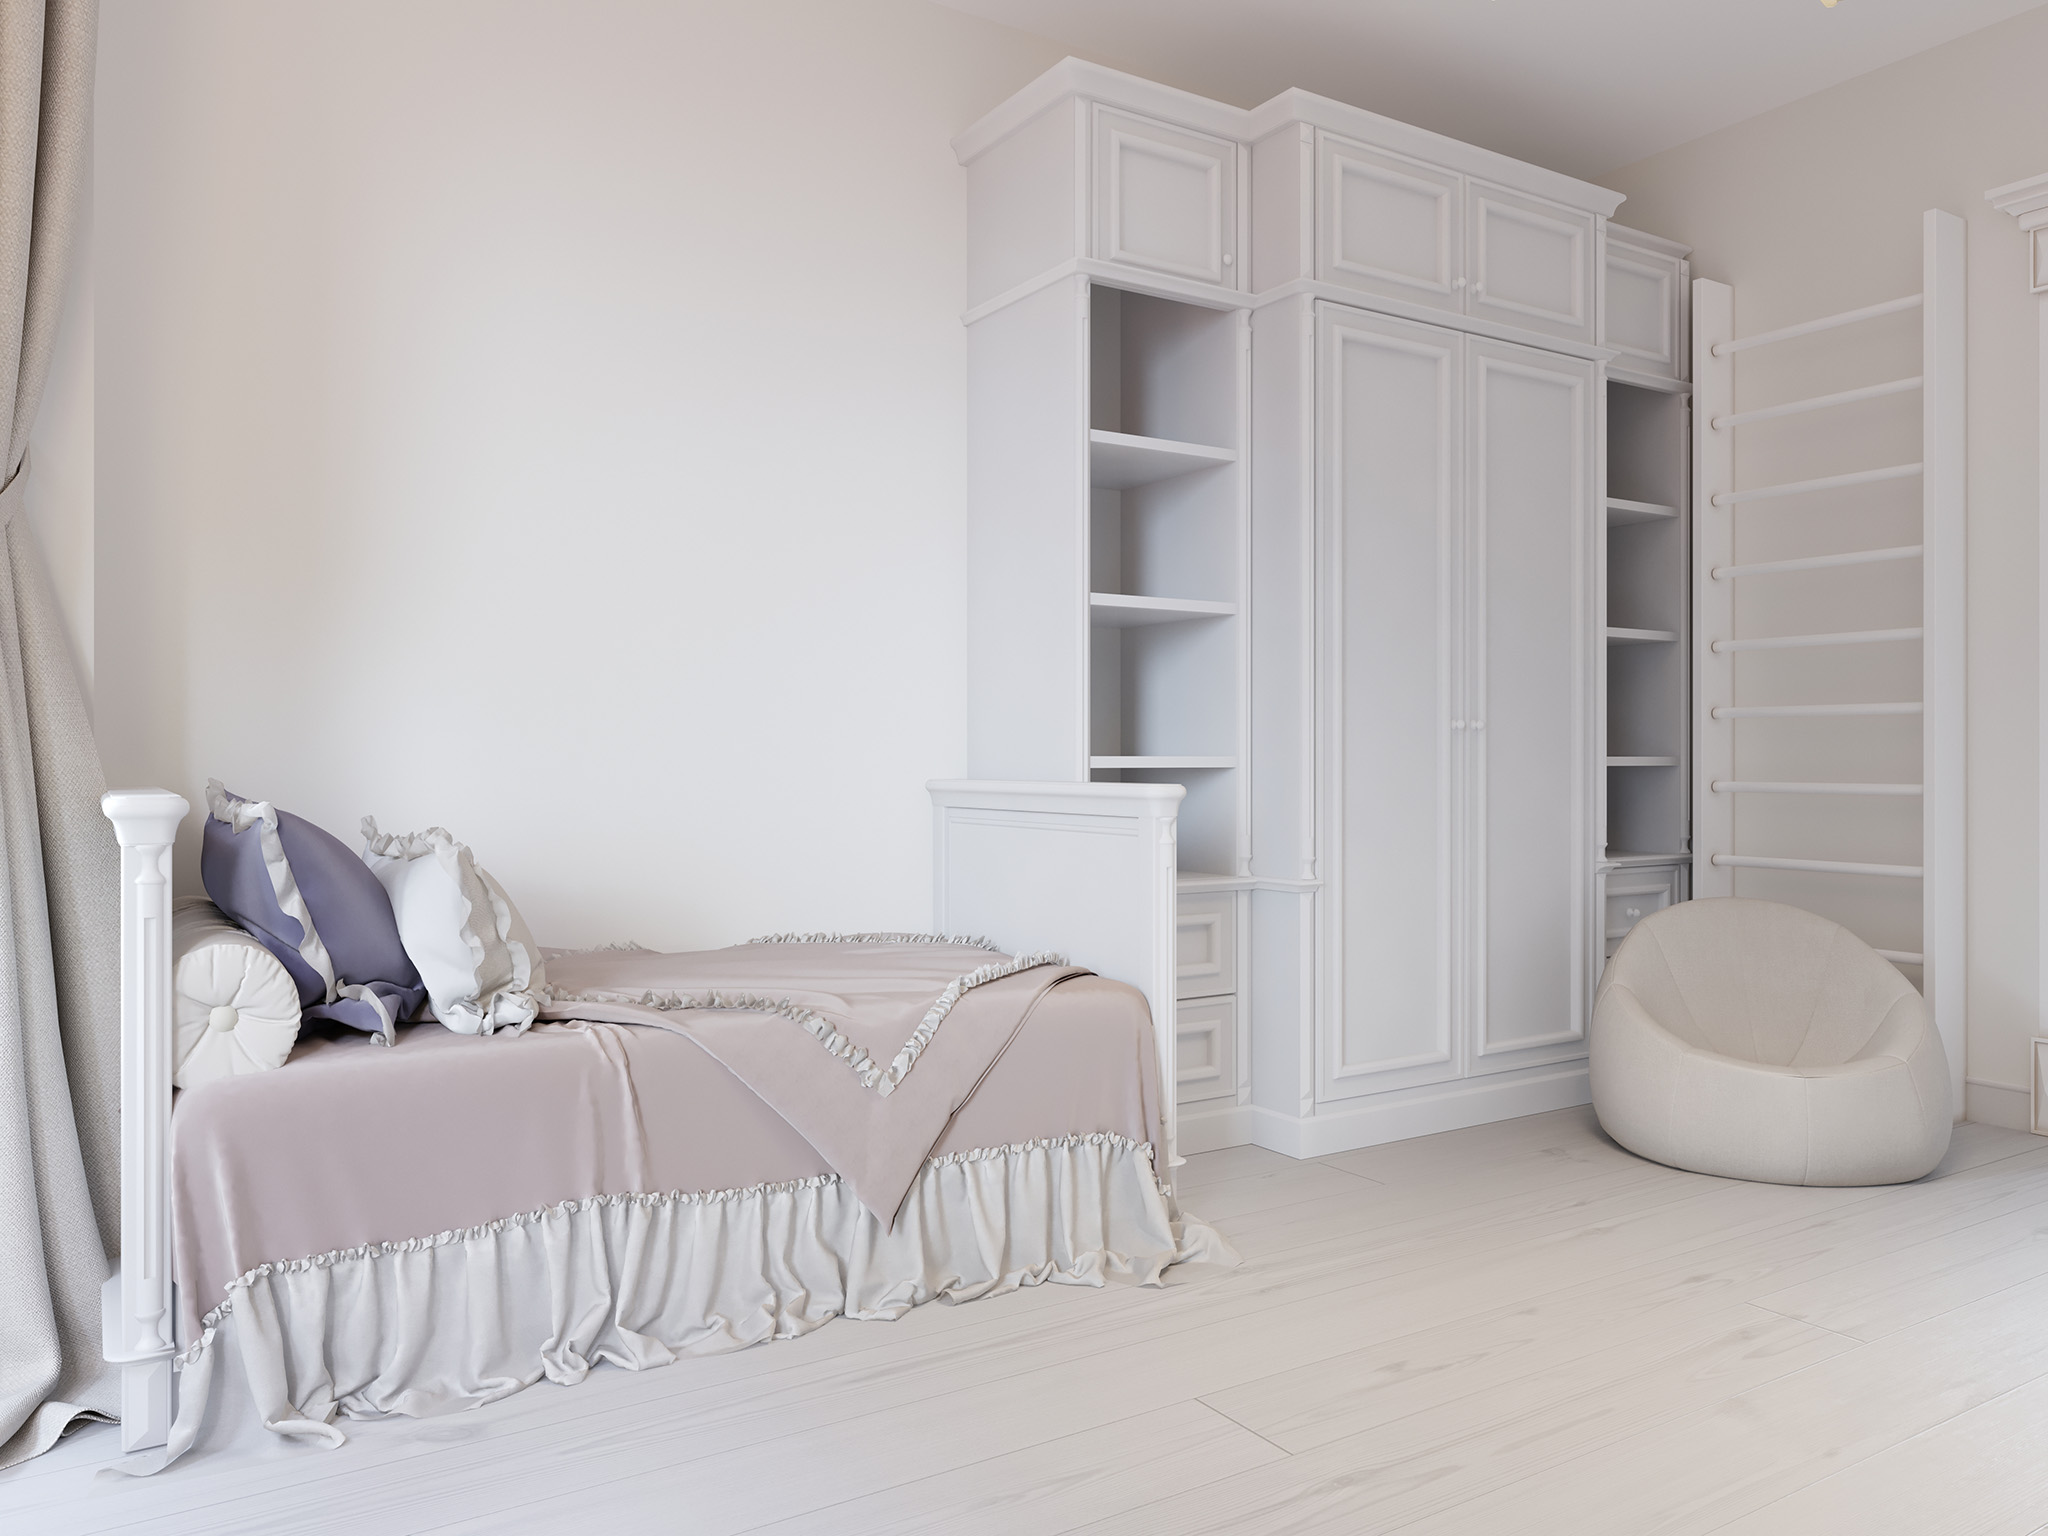 fitted bespoke wardrobes, white wardrobes, wardrobe with drawers